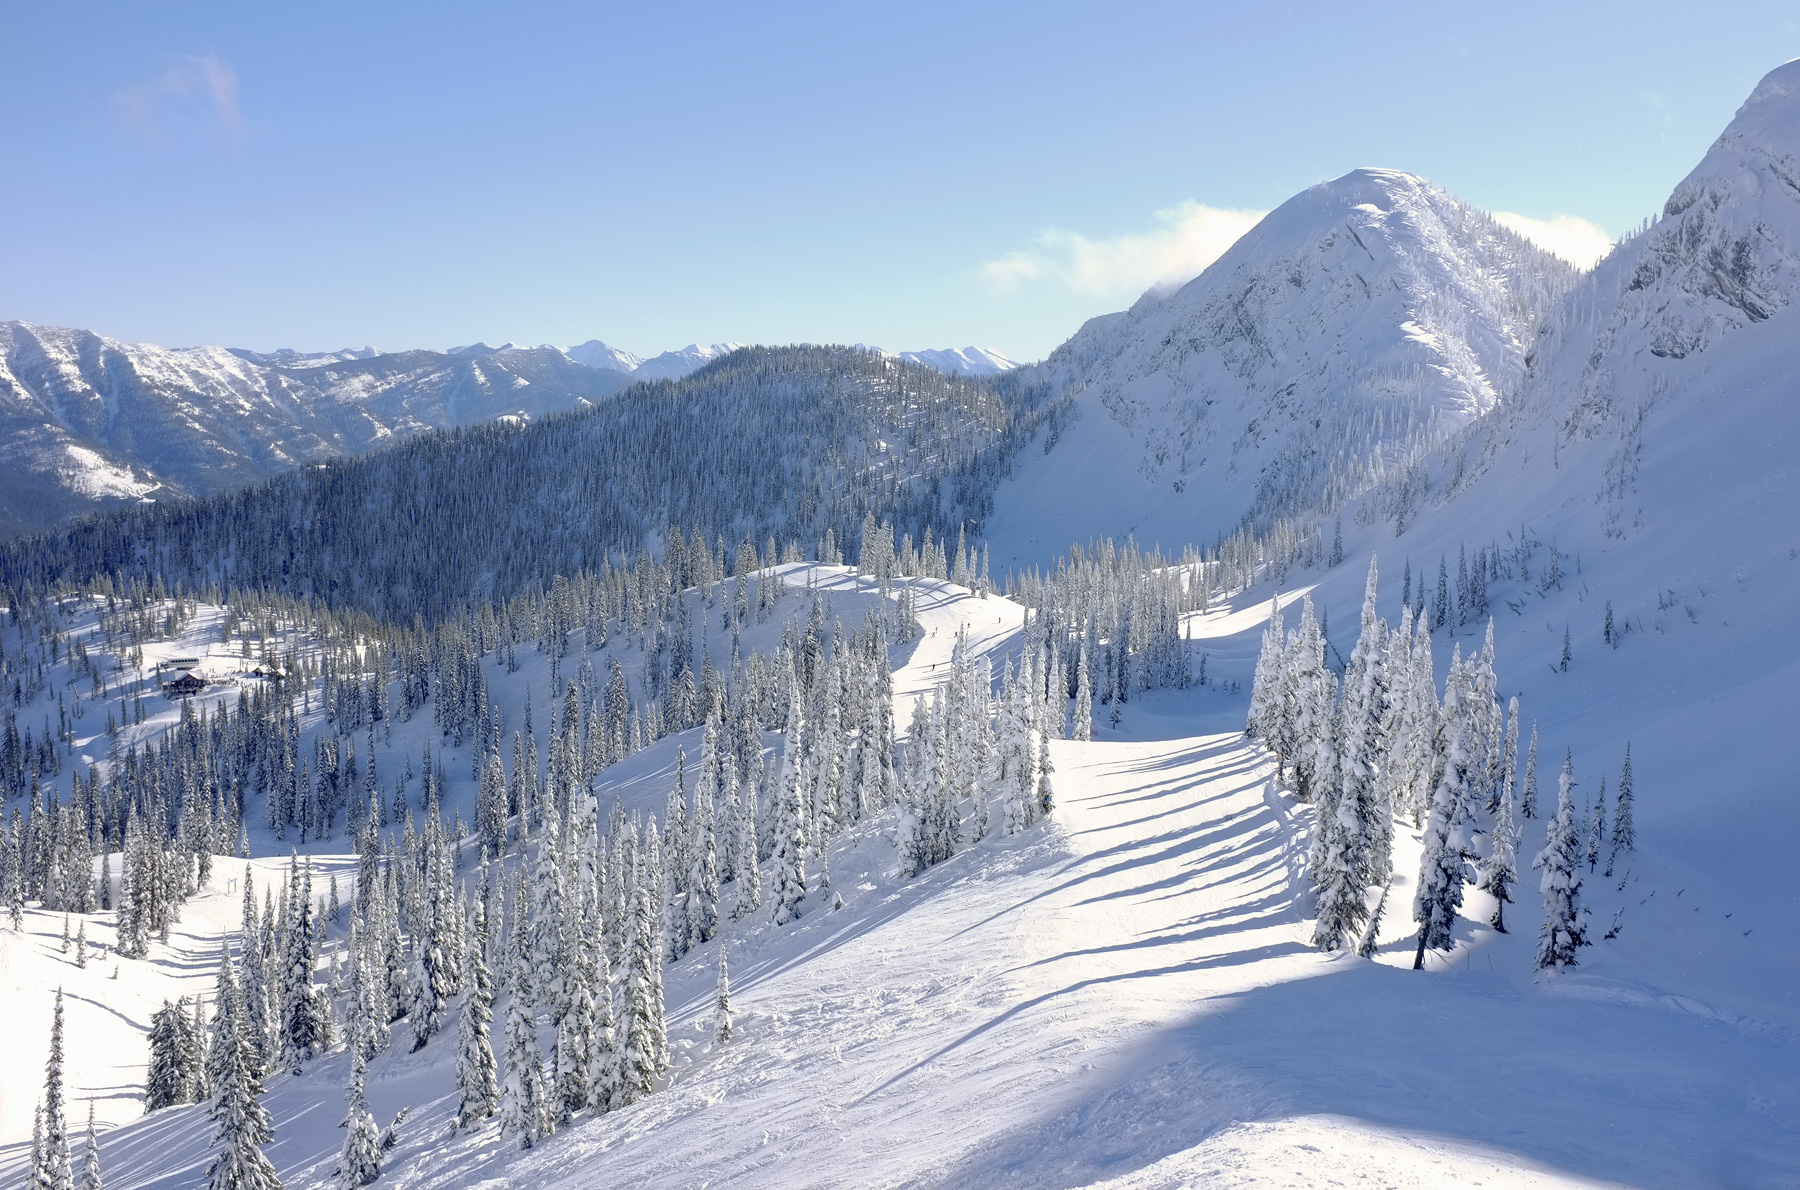 A gorgeous mountain view from the top of one of the amazing powder snow bowls at Fernie ski resort. A brief closure of...